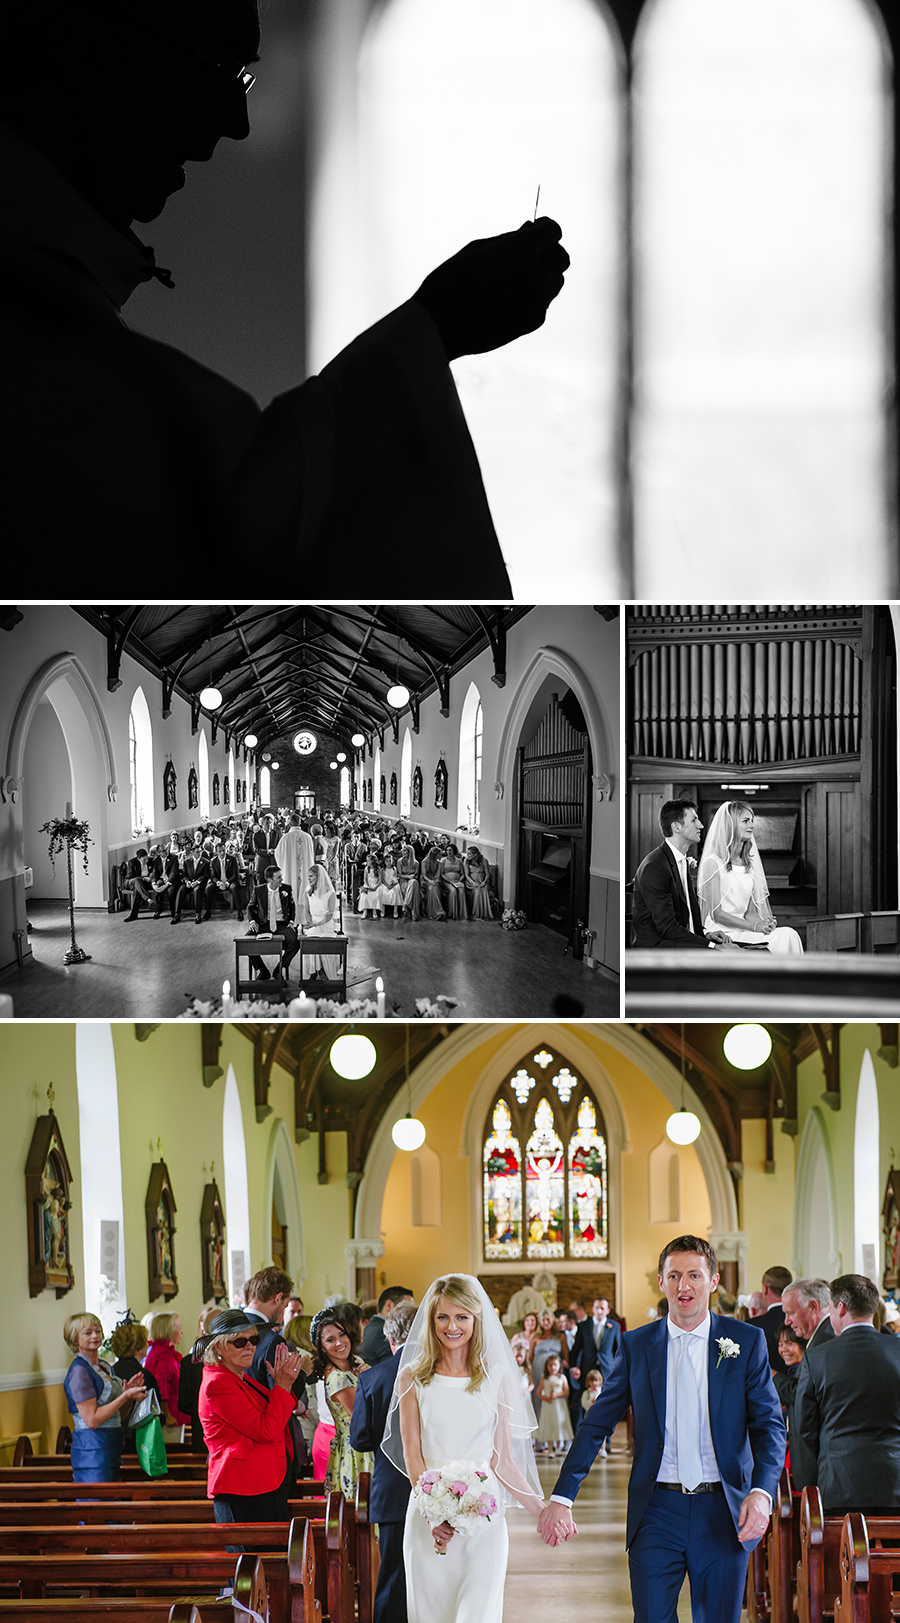 10_dublin wedding photographer_creative wedding photography_bride&groom